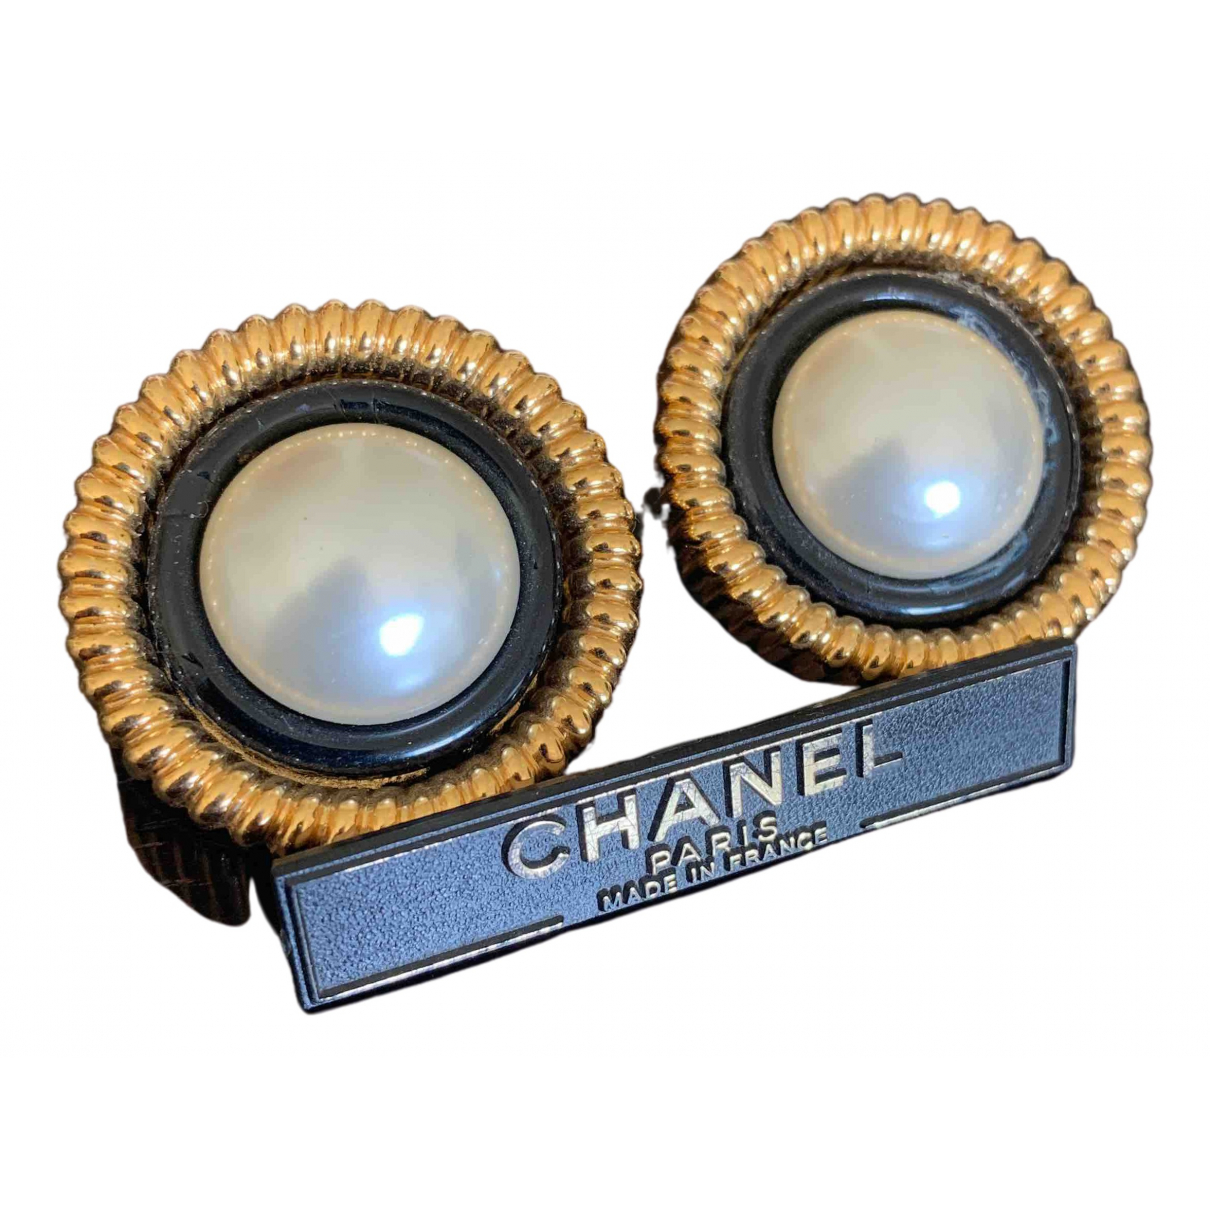 Chanel \N OhrRing in Metall